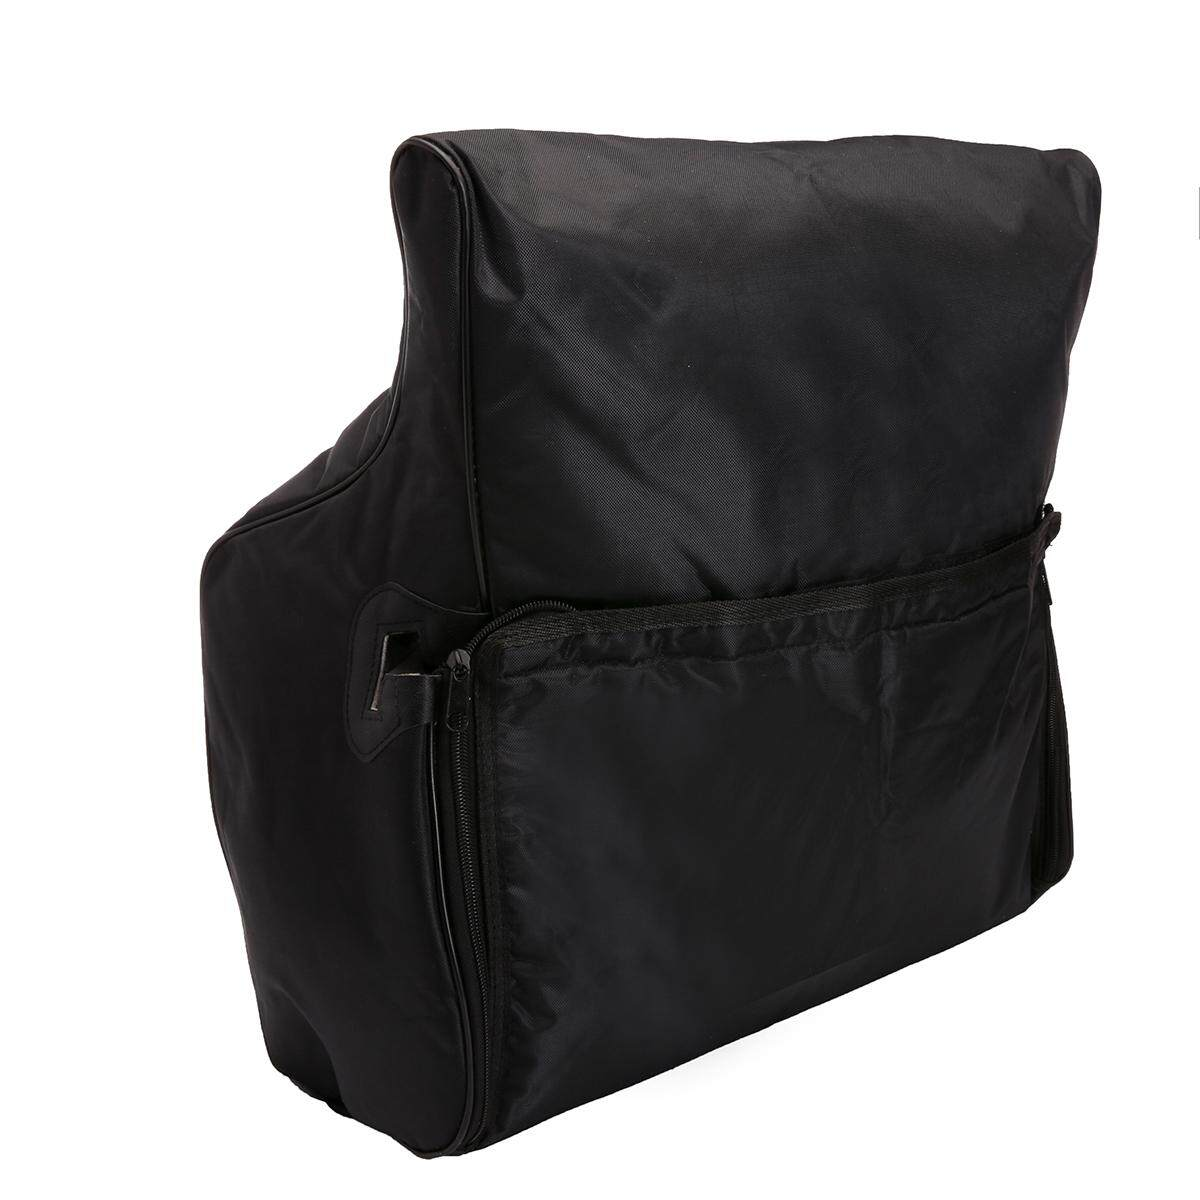 Thick Padded Accordion Gig Bag Case For Bass Piano Backpack Adjustable Strap 120 Bass By Moonbeam.